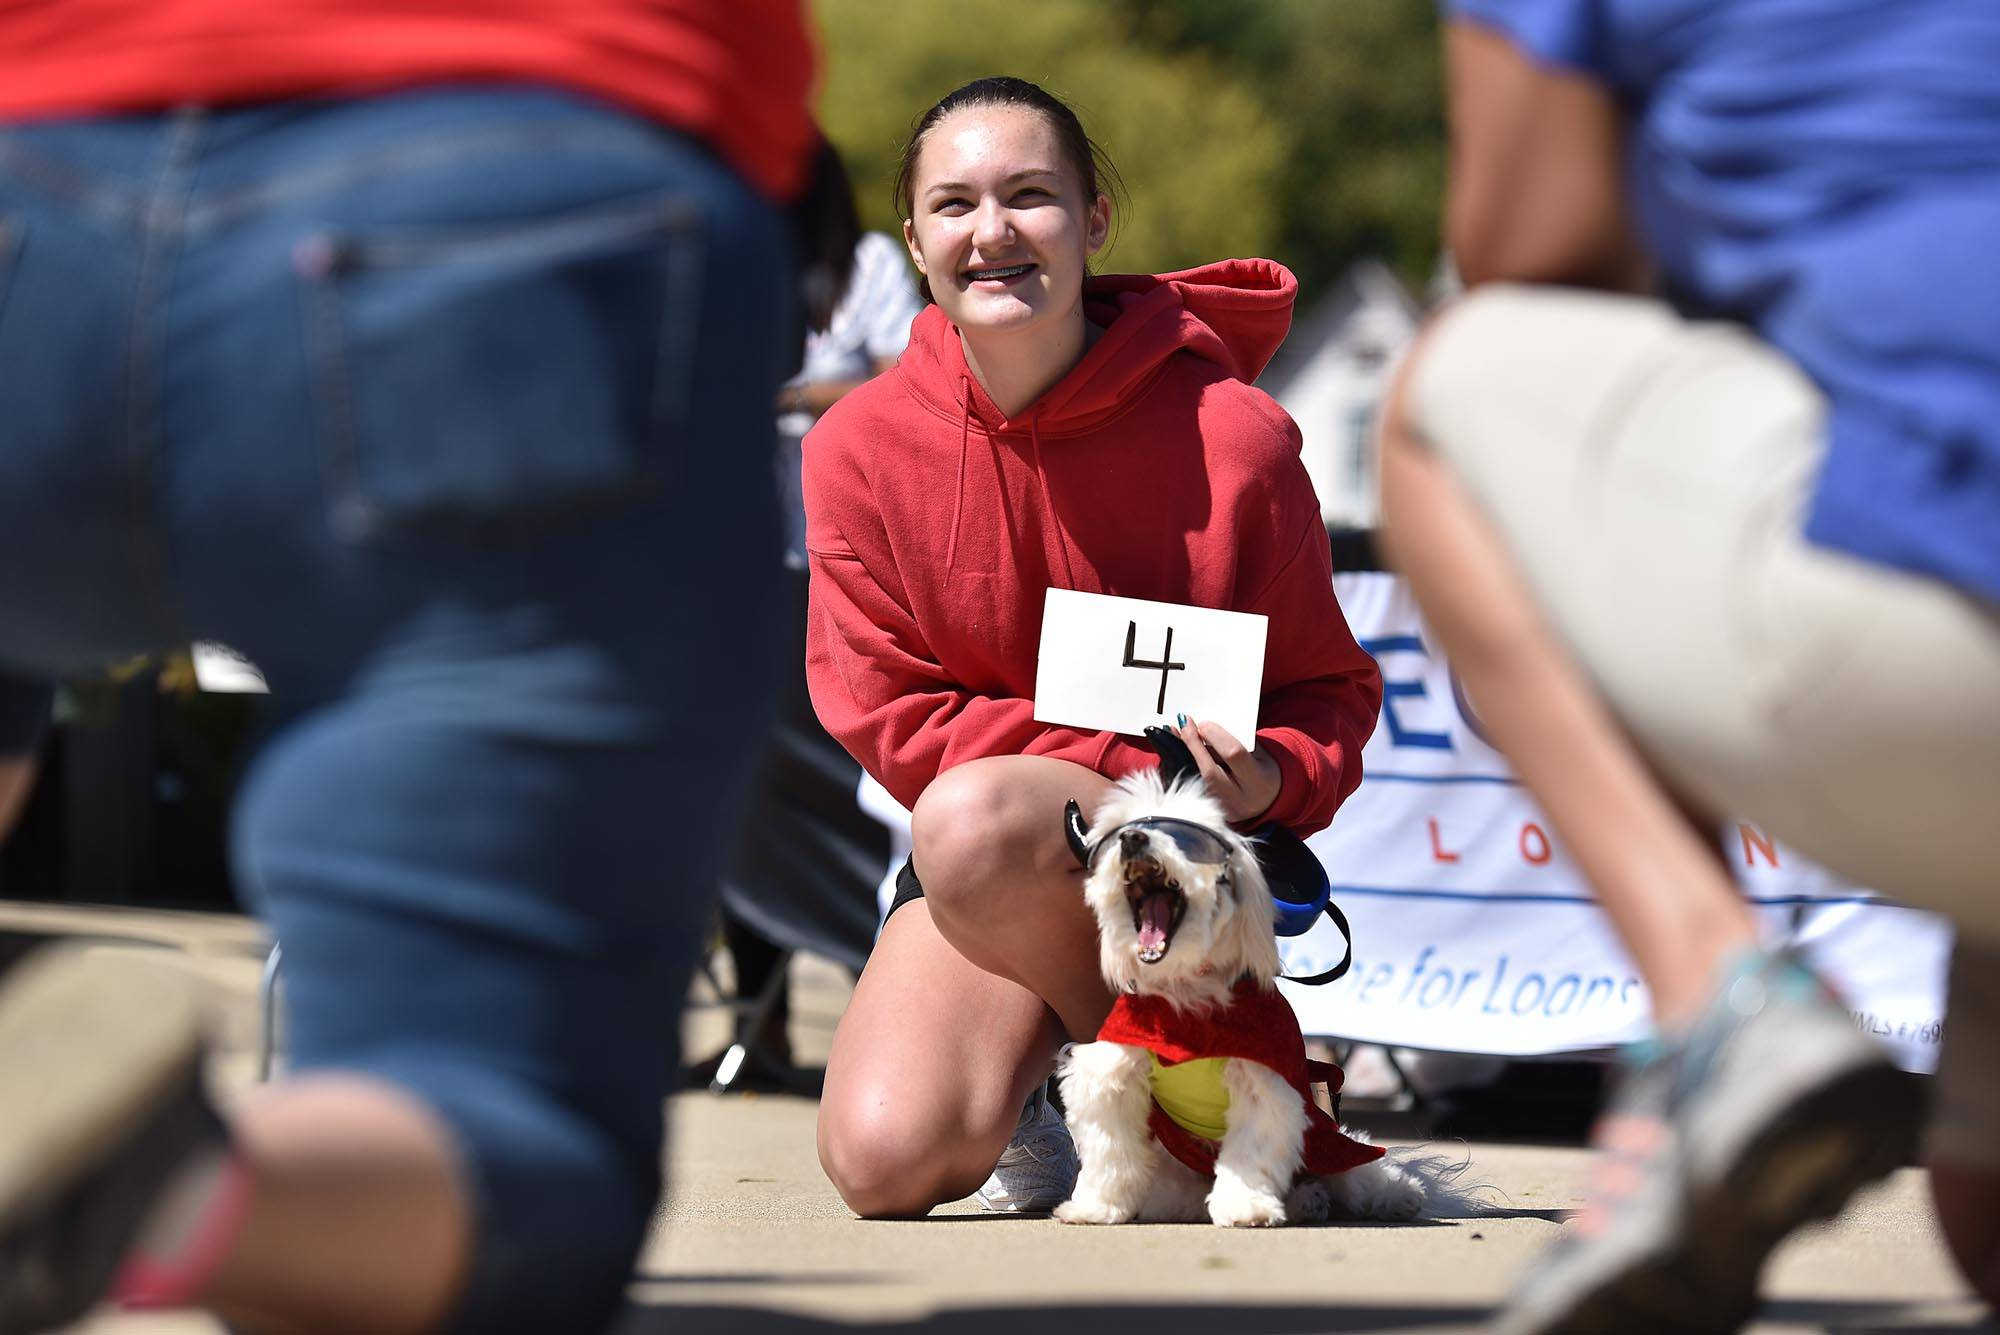 Ho-Beau, a 13-year-old Maltese mix, makes a face as he has his picture taken with Isabella Gucciardo, of Glen Ellyn Saturday at the Algonquin Founder's Day River Relief Benefit at Riverfront Park in Algonquin. The dog won first place in the best costume category of a dog and cat show.